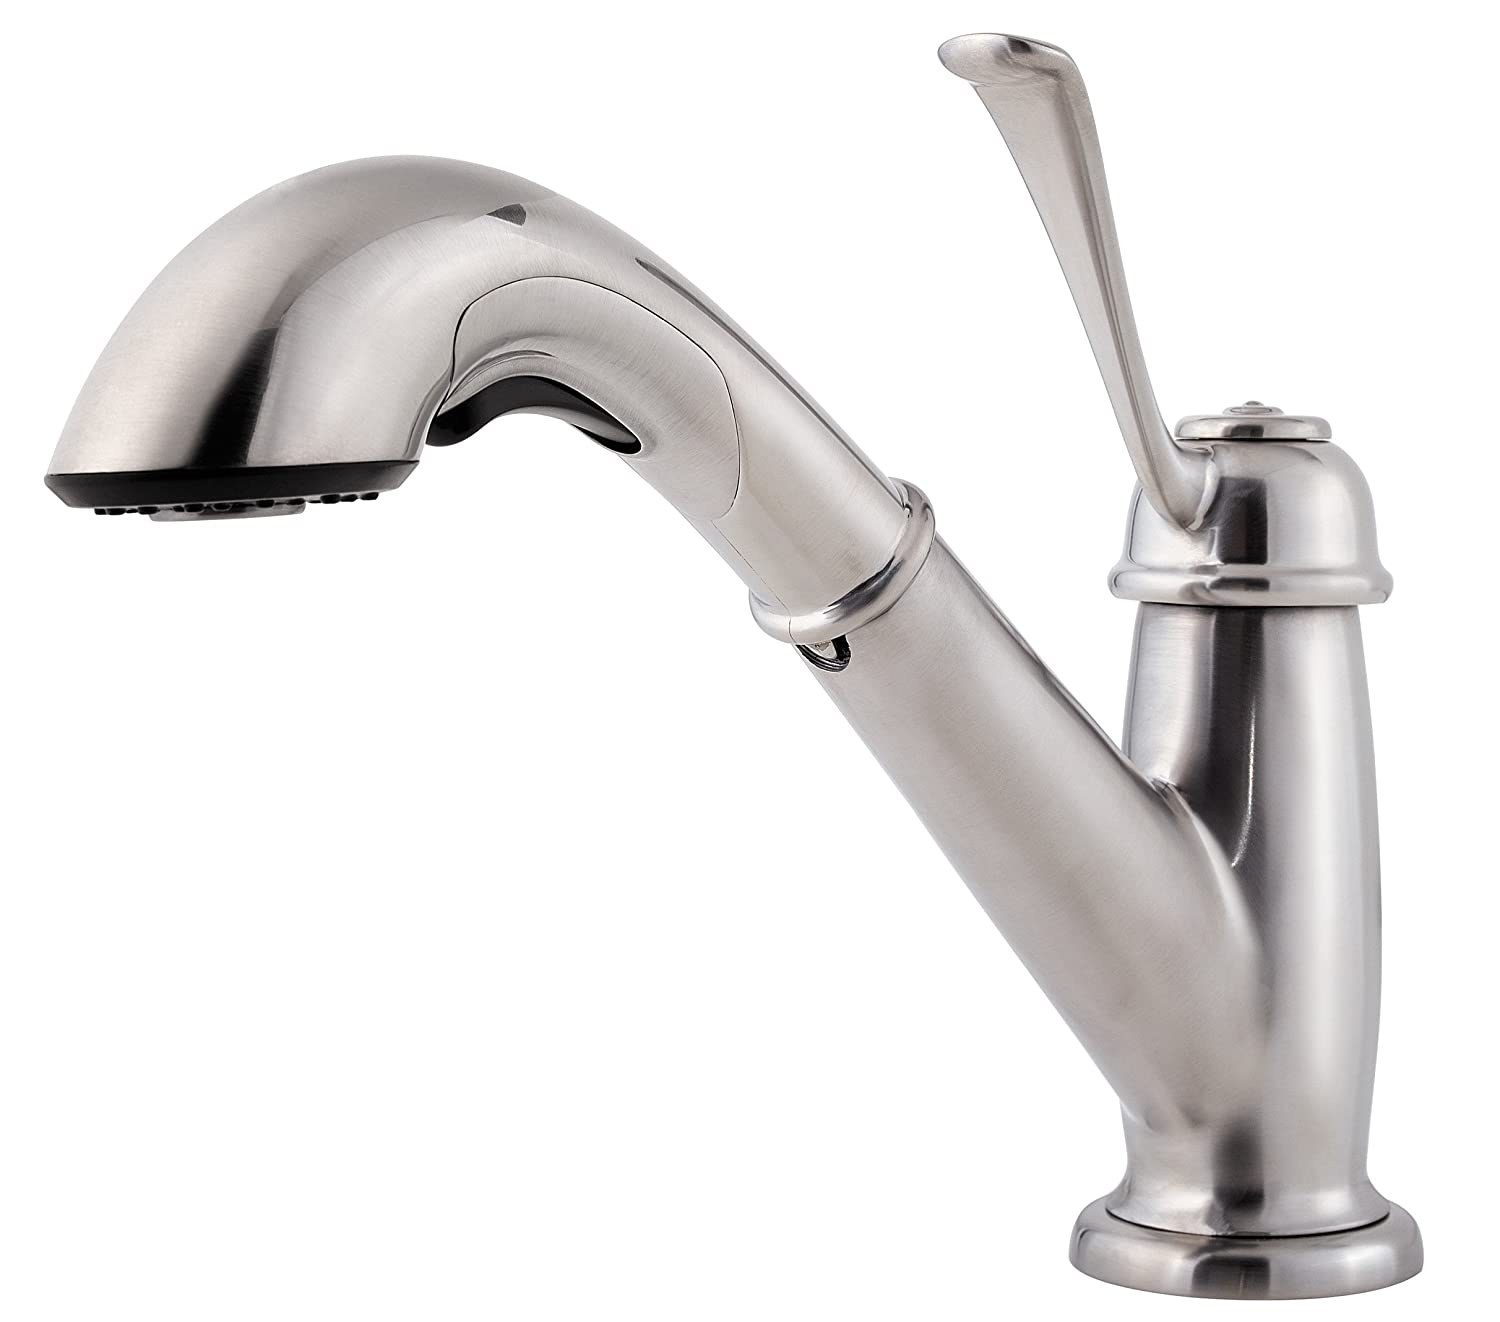 Pfister LF5385LCS Bixby 1-Handle Pull Out Kitchen Faucet, Stainless Steel,1.8 gpm